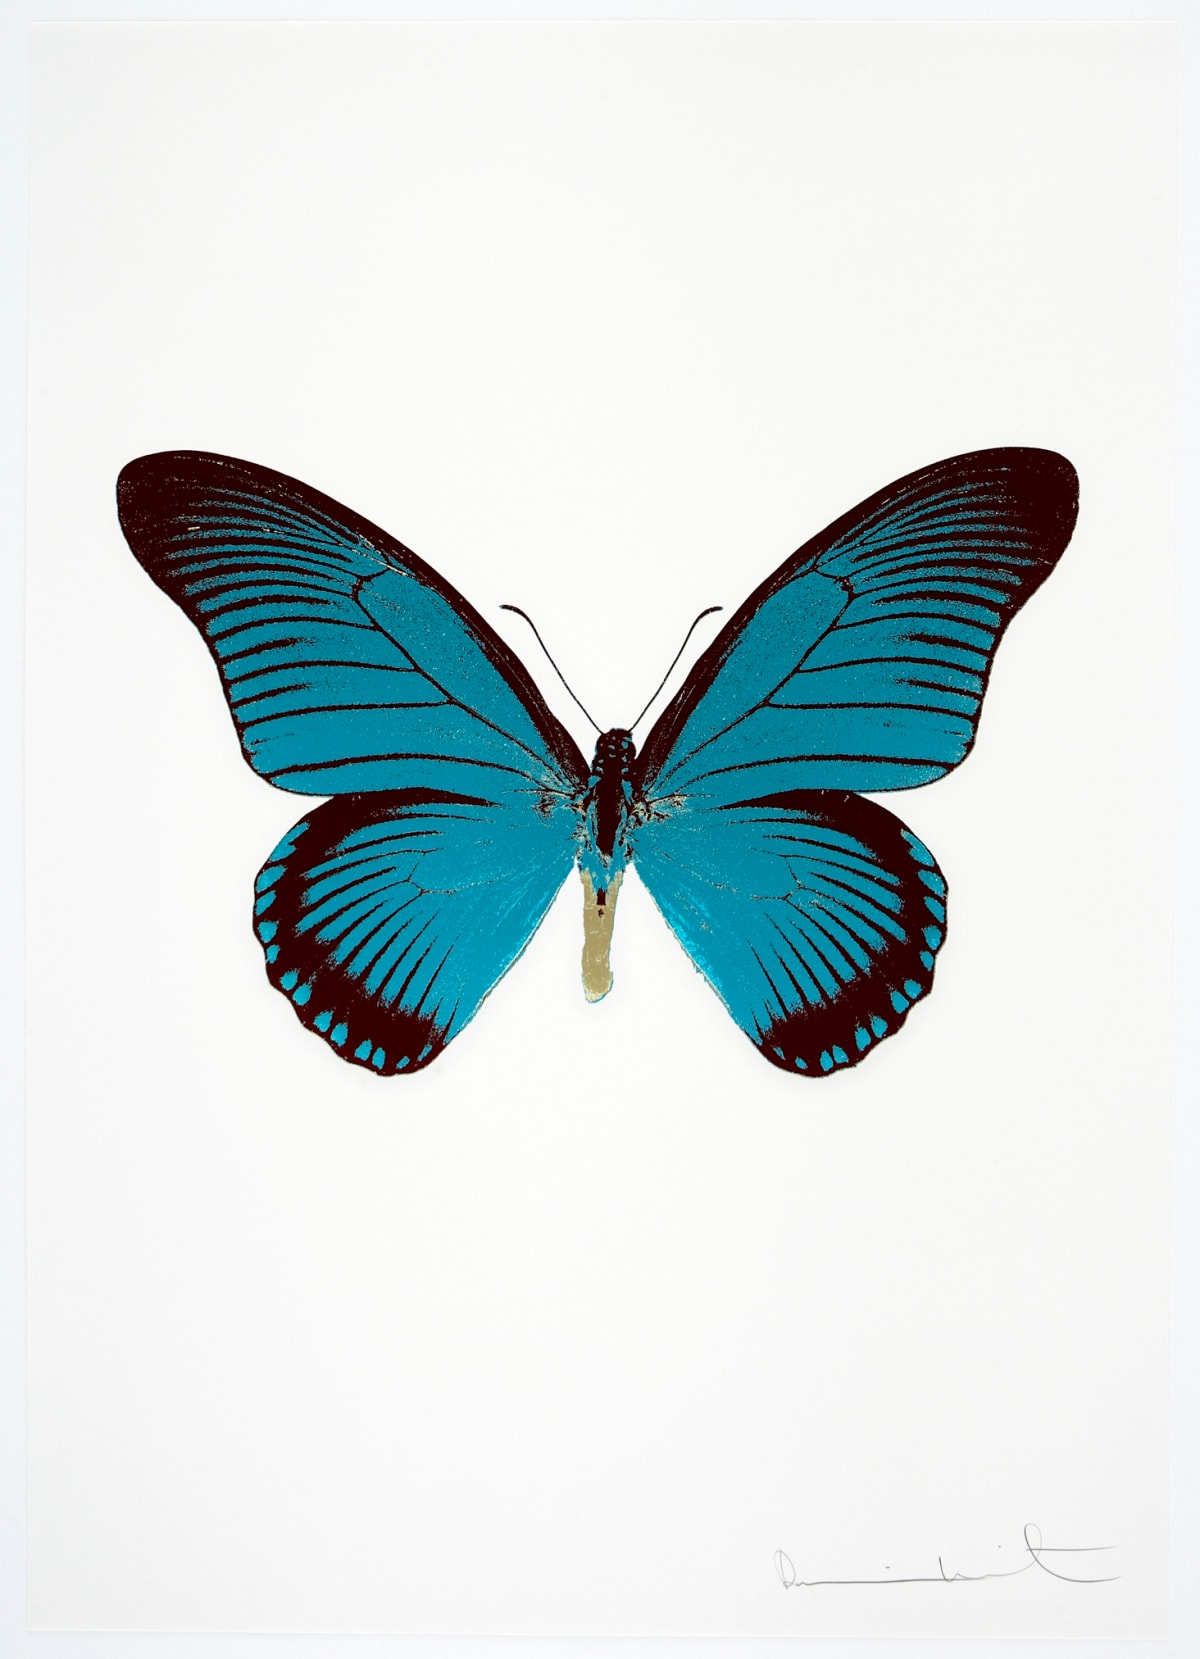 Damien Hirst The Souls IV -Topaz/Burgundy/Cool Gold Damien Hirst butterfly foil print for sale Damien Hirst print for sale , 2010 3 colour foil block on 300gsm Arches 88 archival paper. Signed and numbered. Published by Paul Stolper and Other Criteria 72 x 51cm OC7984 / 1418-7 Edition of 15